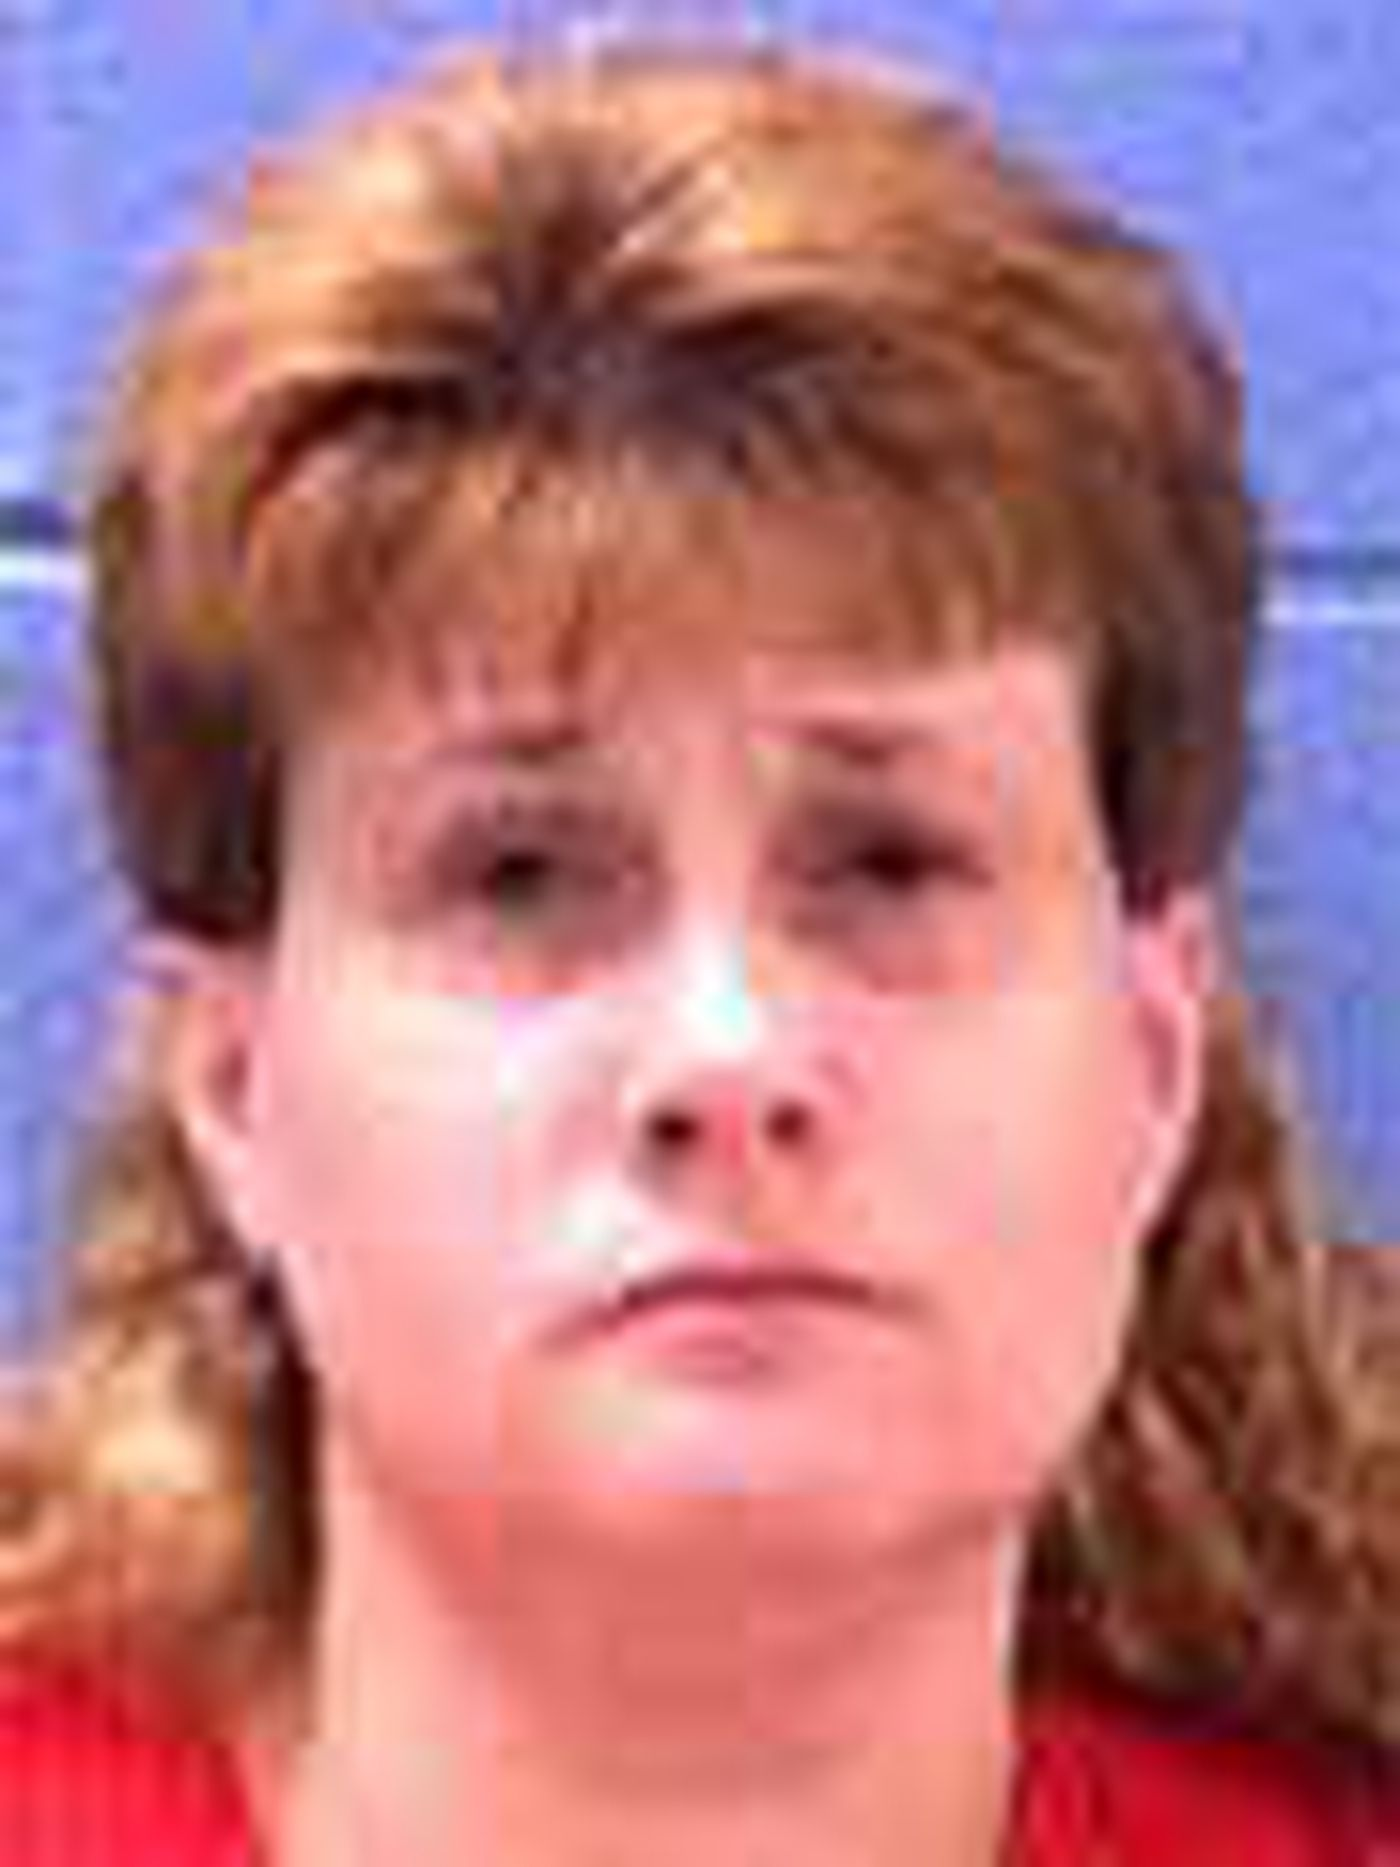 Swansea Woman Arrested On Charges Of Keeping Exotic Pets In Home